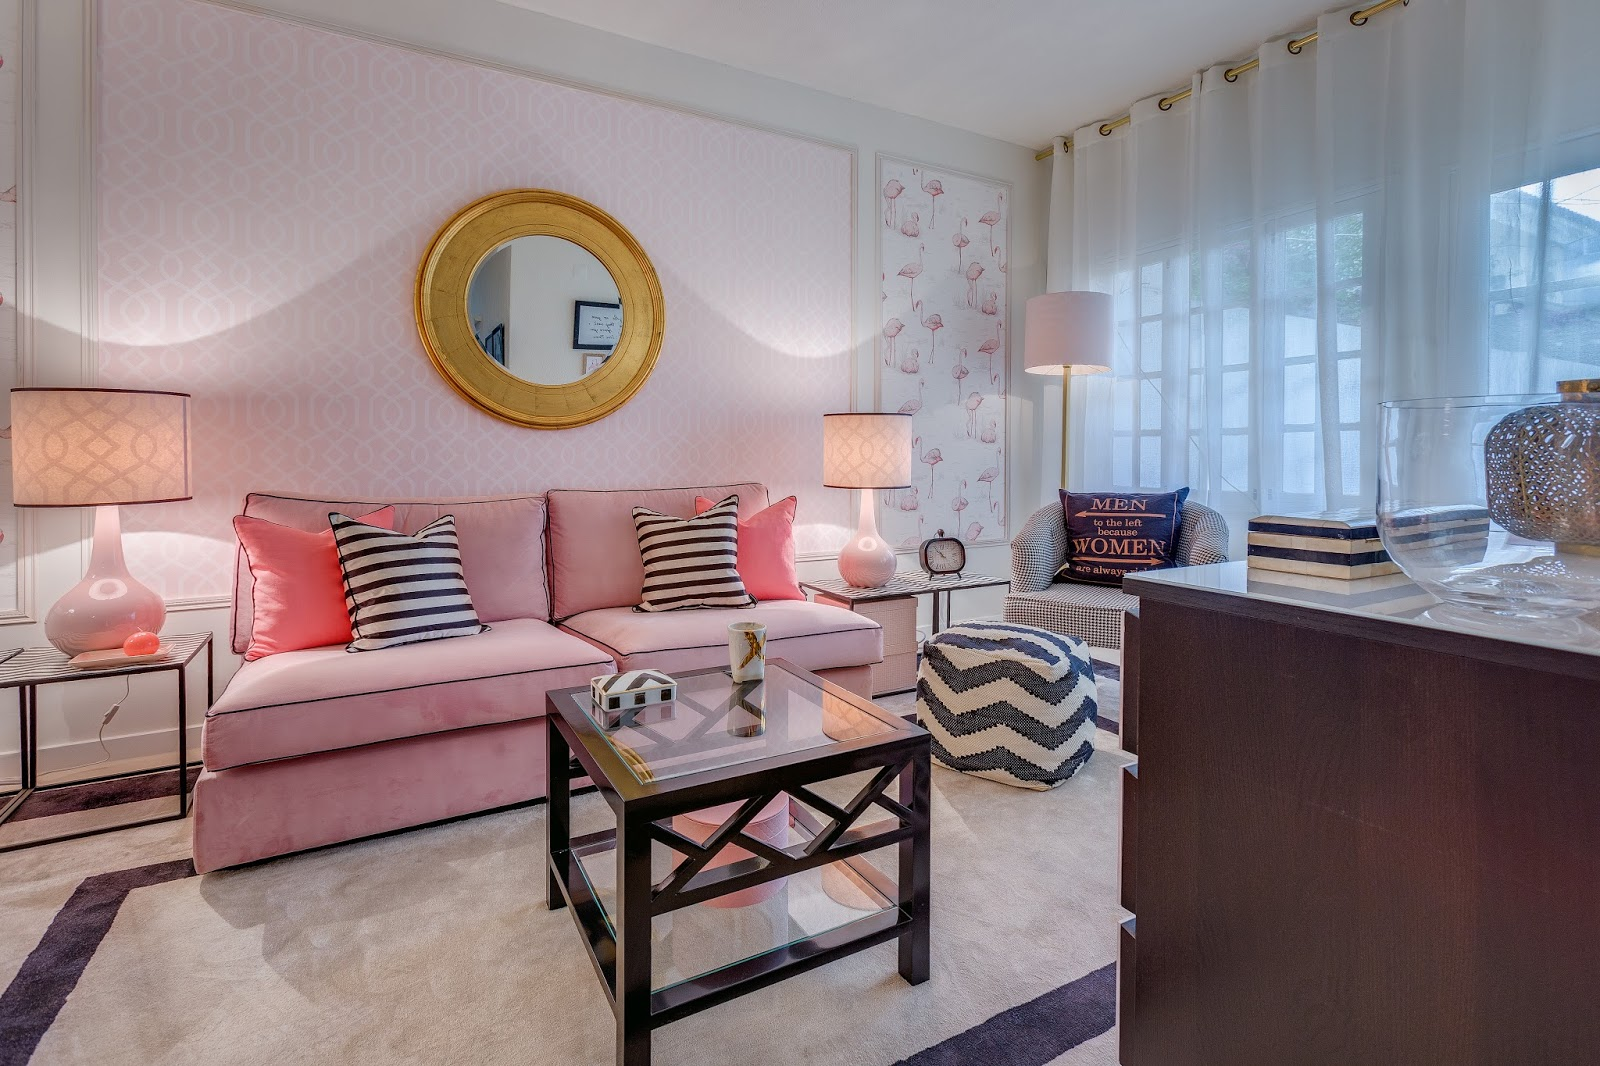 home styling ana antunes querido mudei a casa 2415 before and after tv show pink fashion. Black Bedroom Furniture Sets. Home Design Ideas